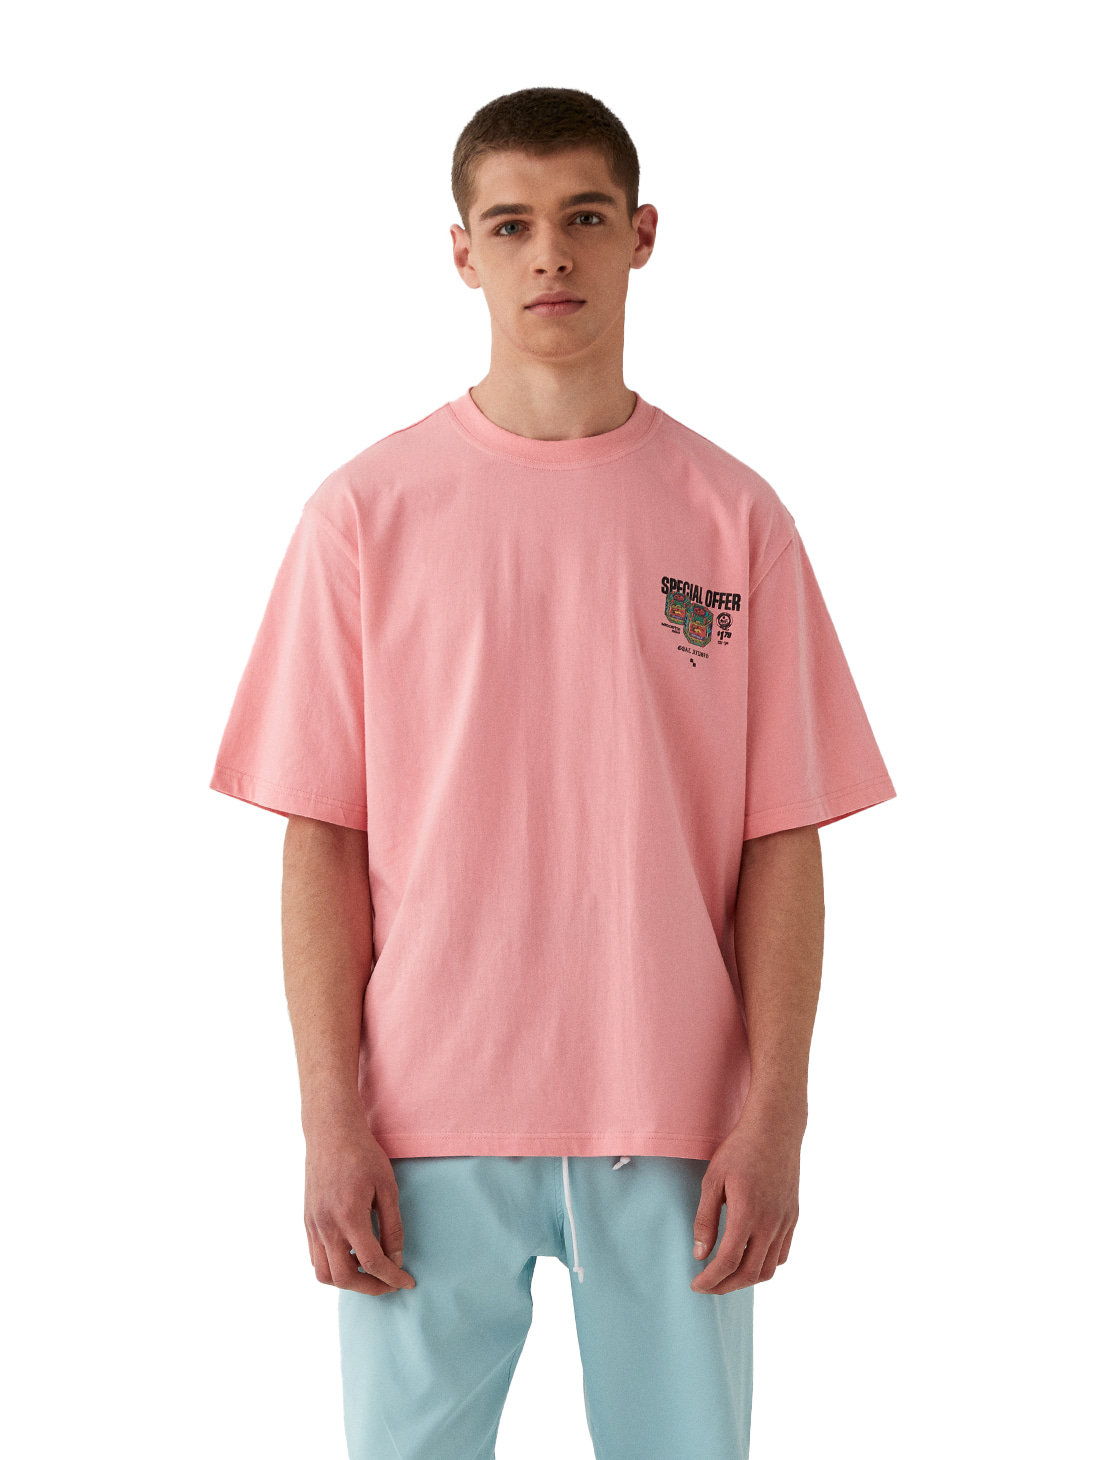 GOALSTUDIO MC BALM LOGO GRAPHIC TEE - PINK